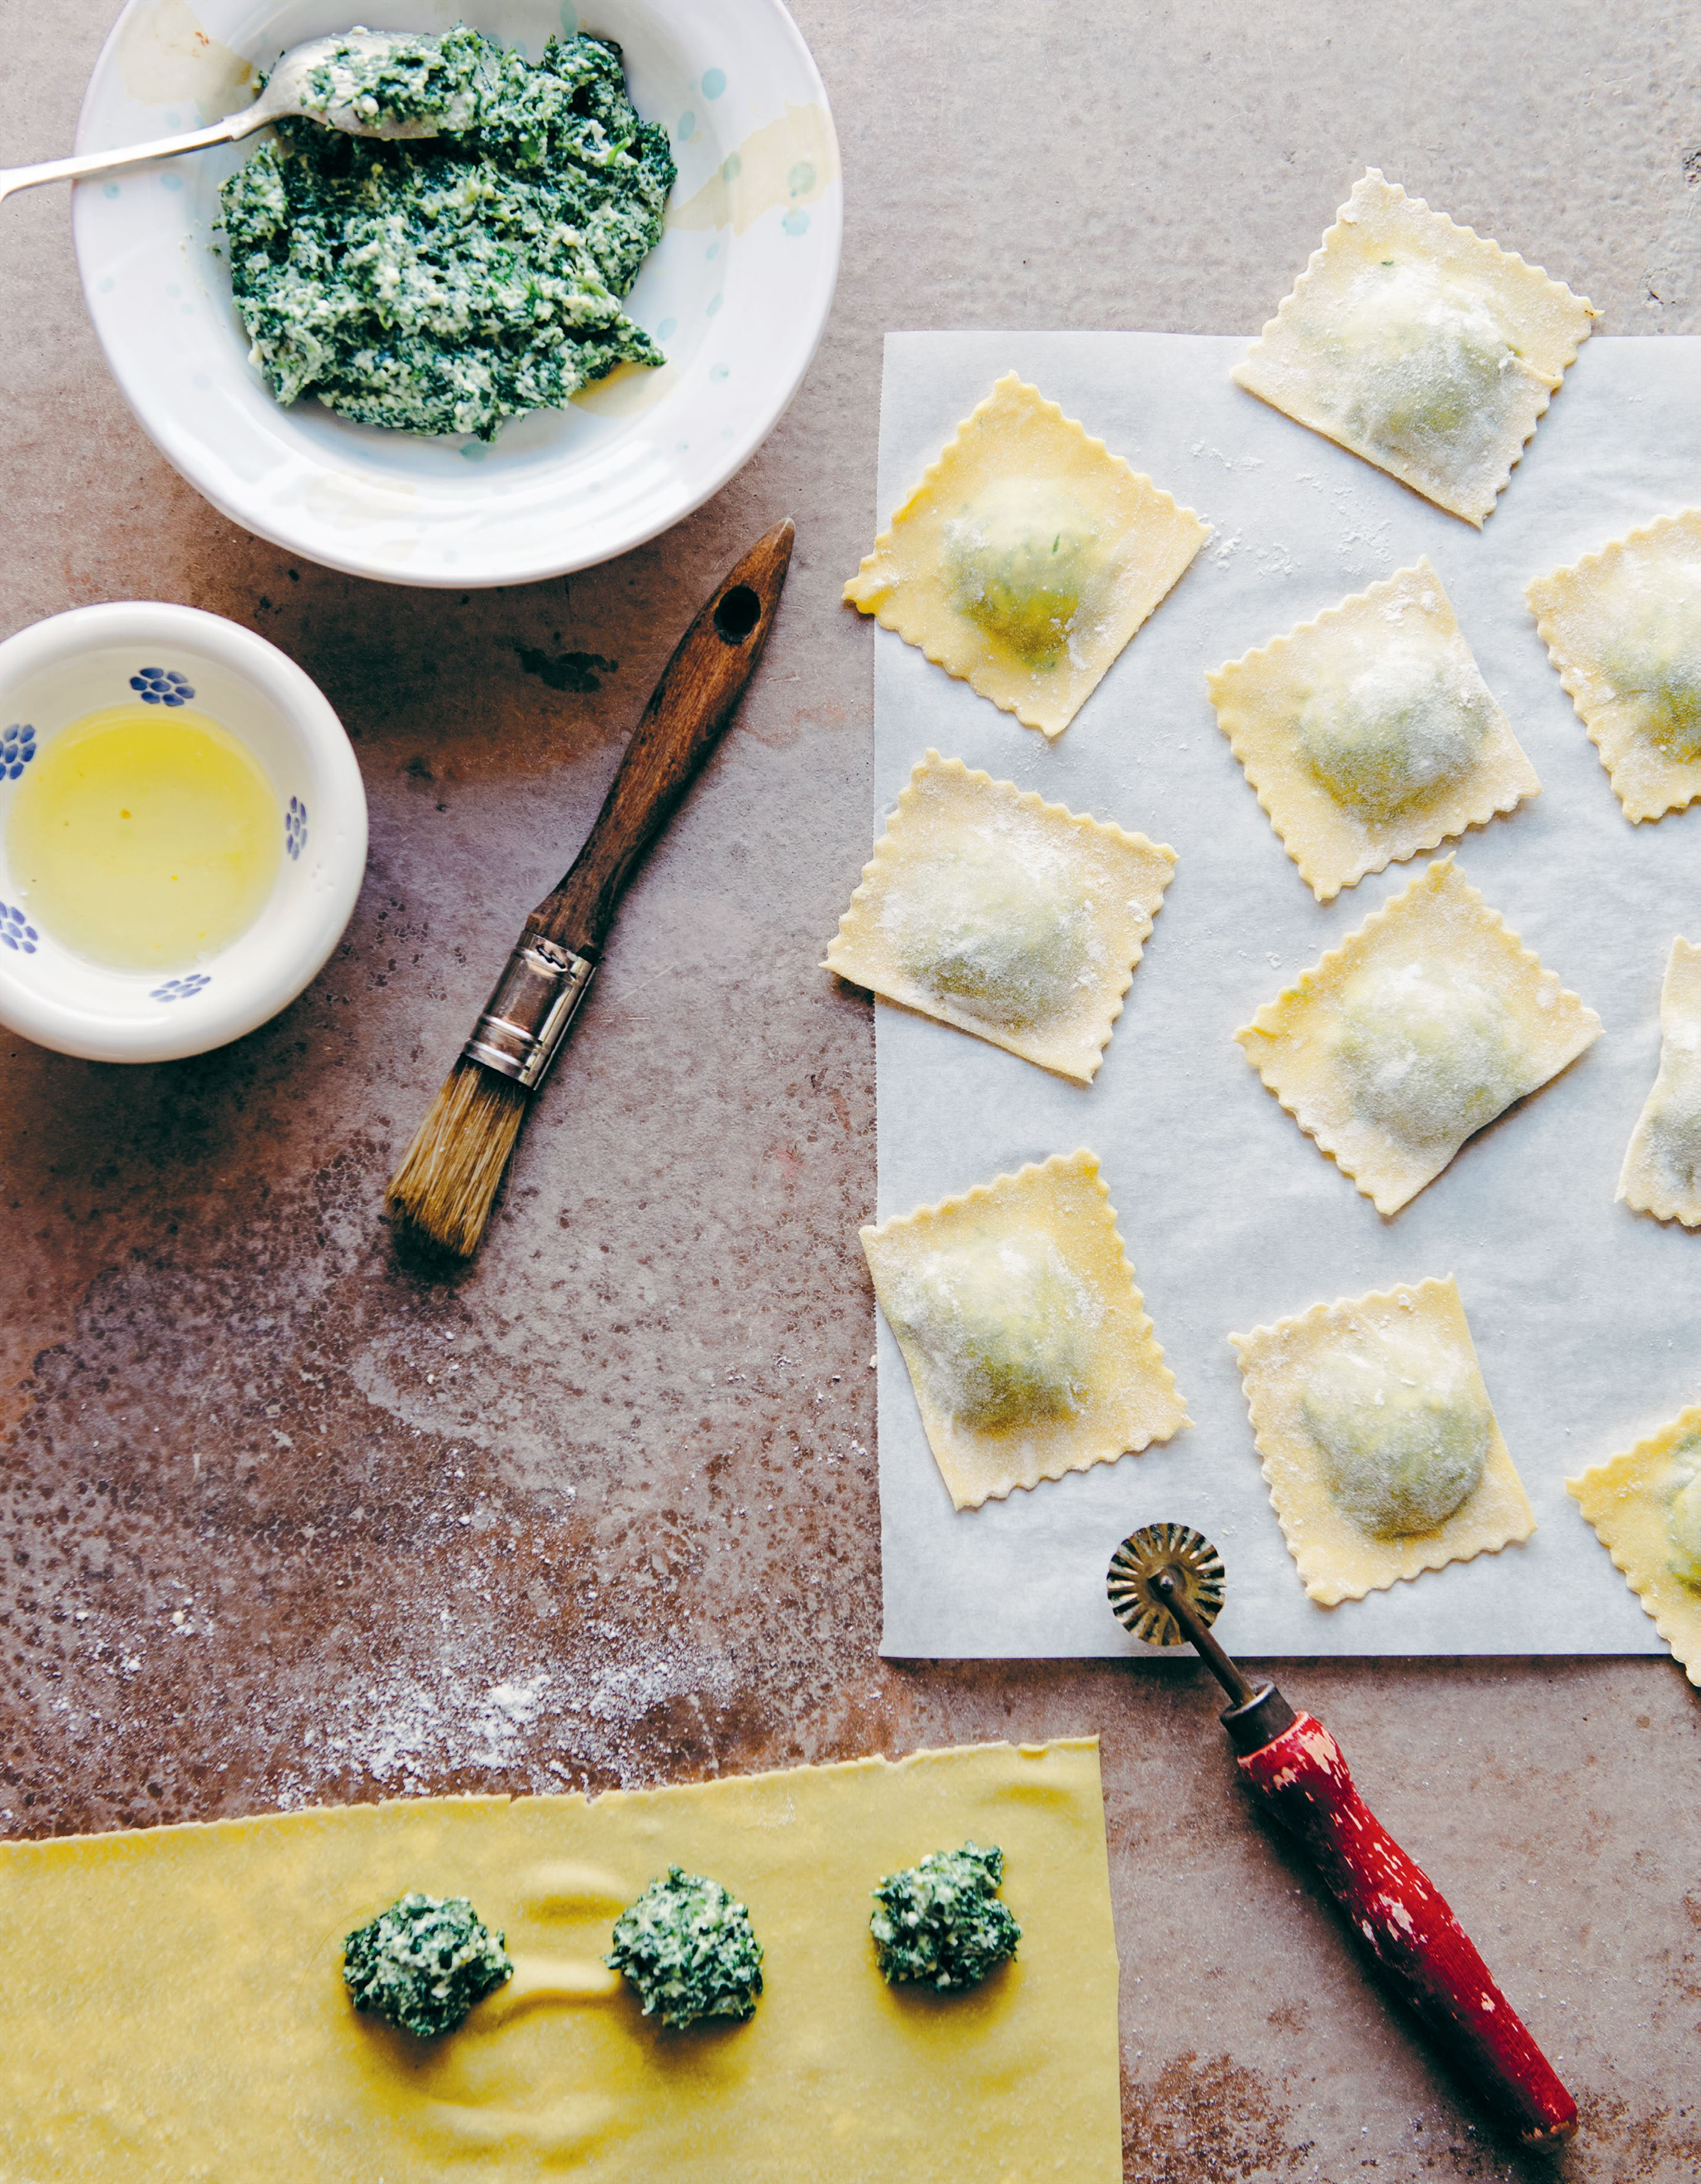 Ricotta and spinach tortelli